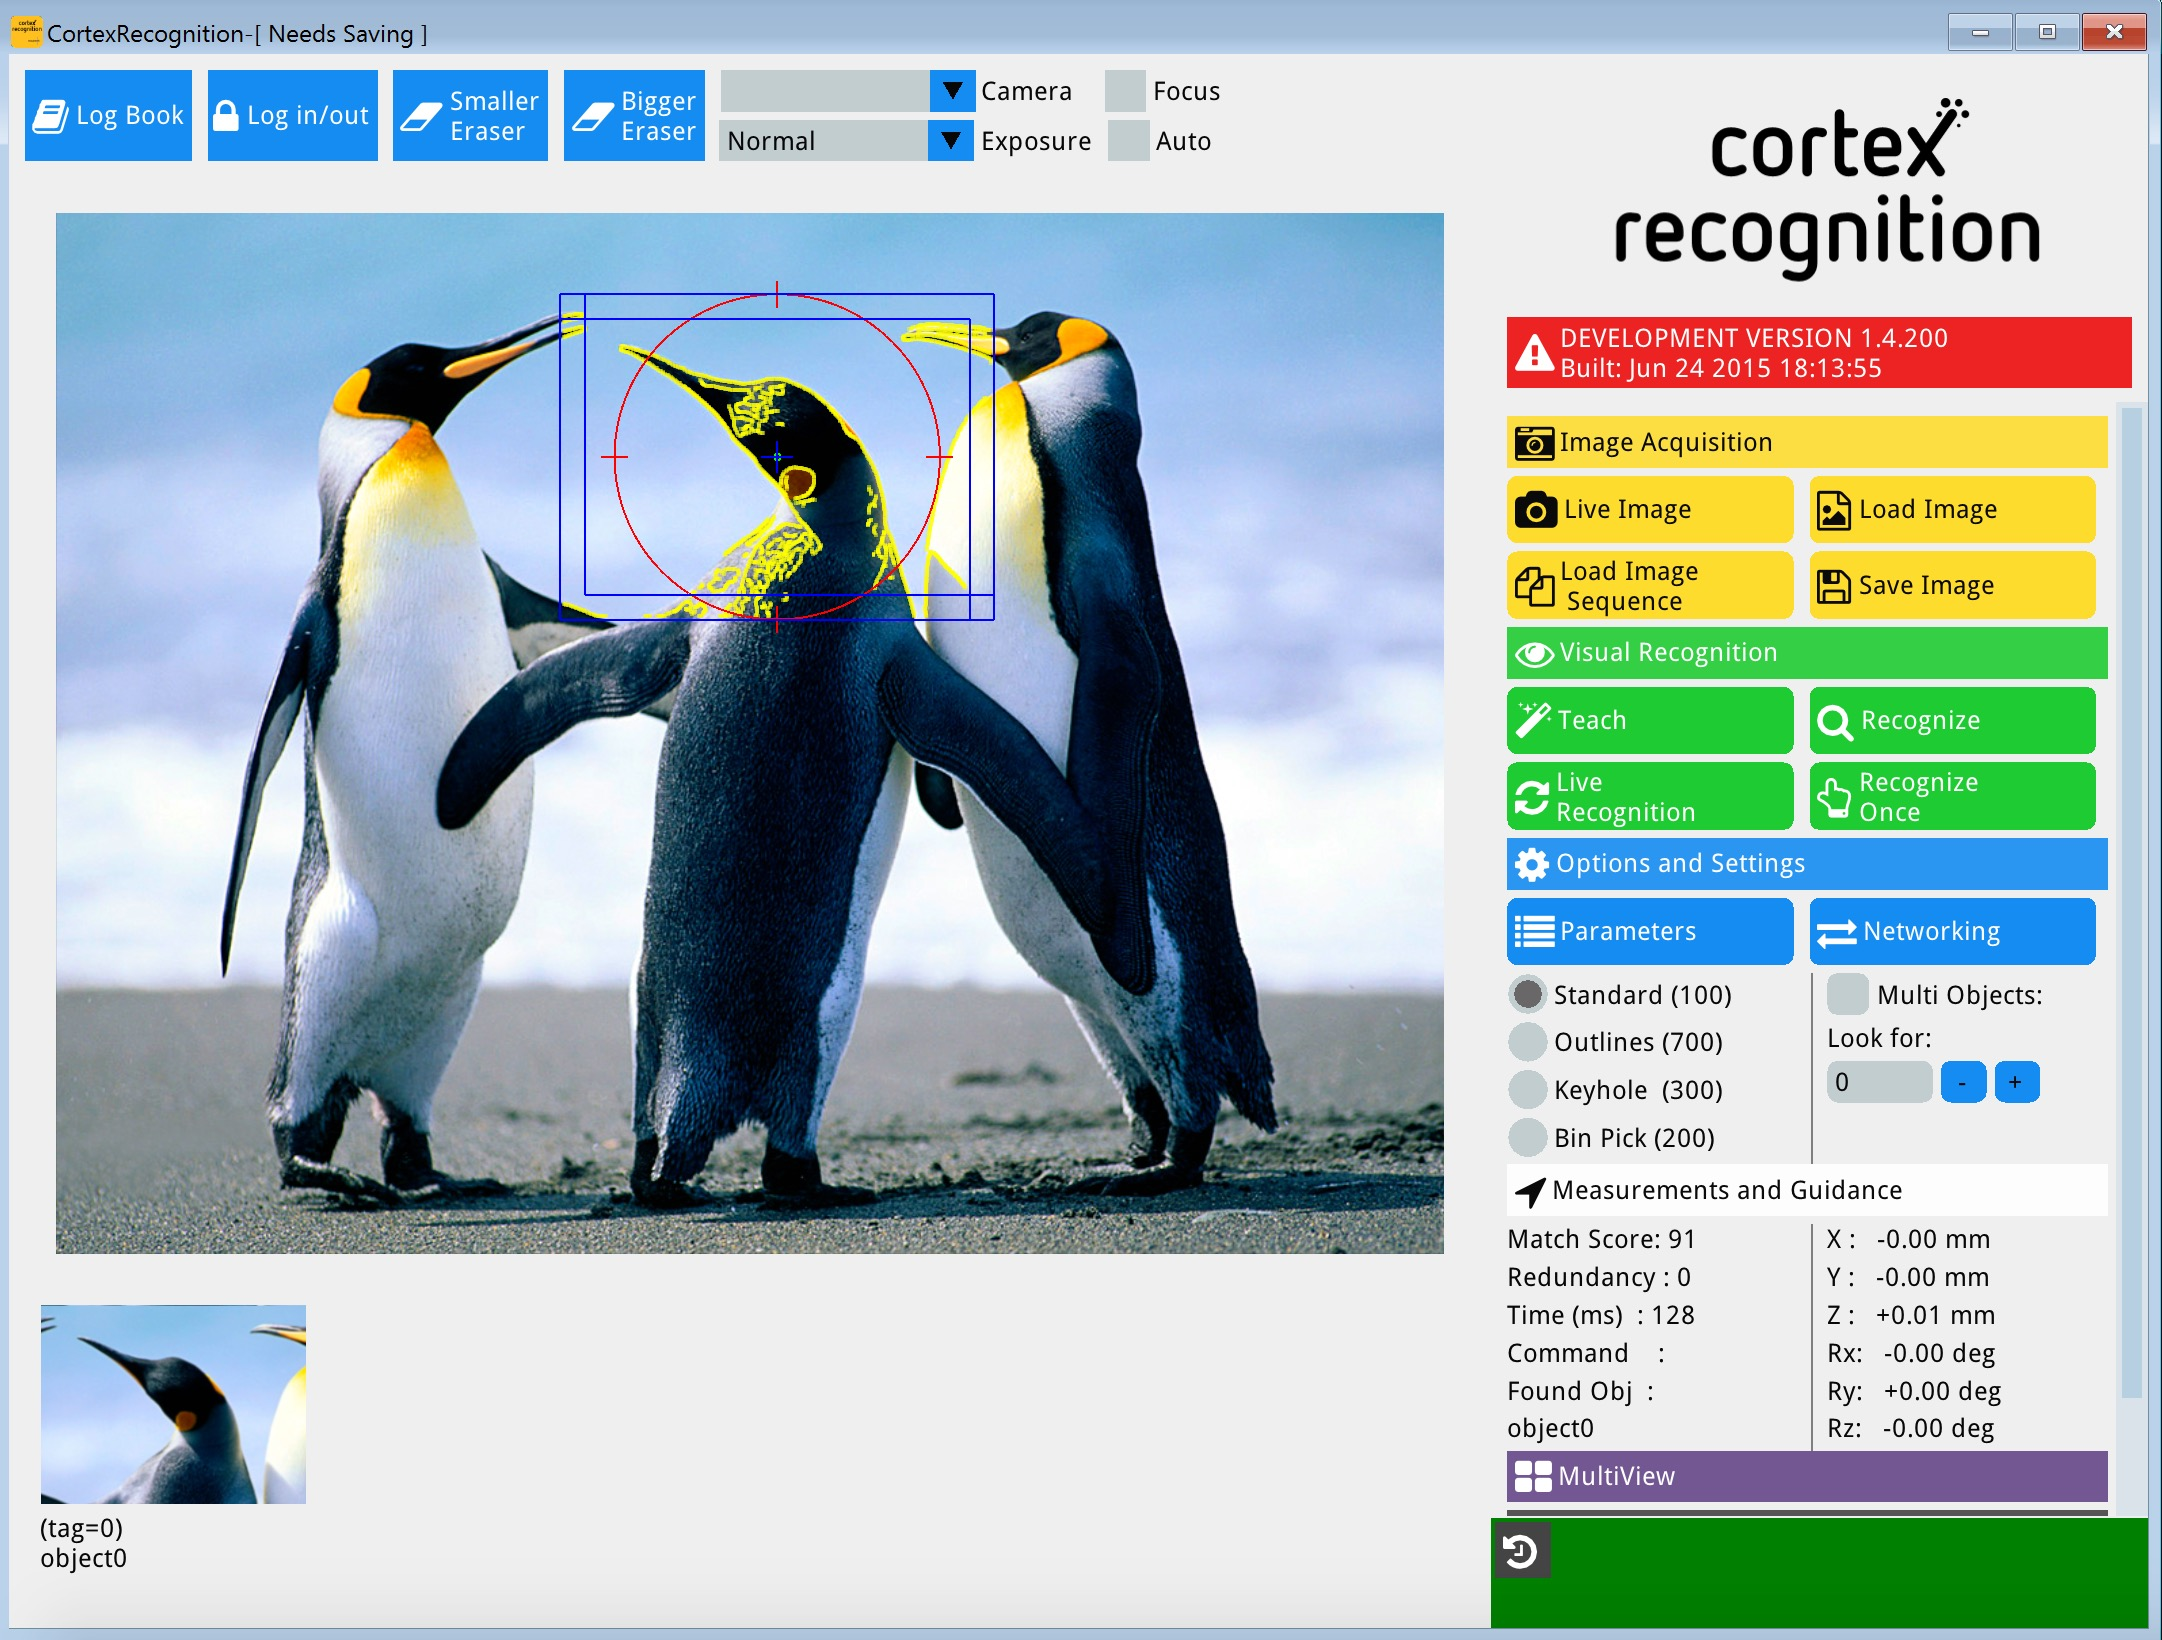 cortexrecognitionpreview2